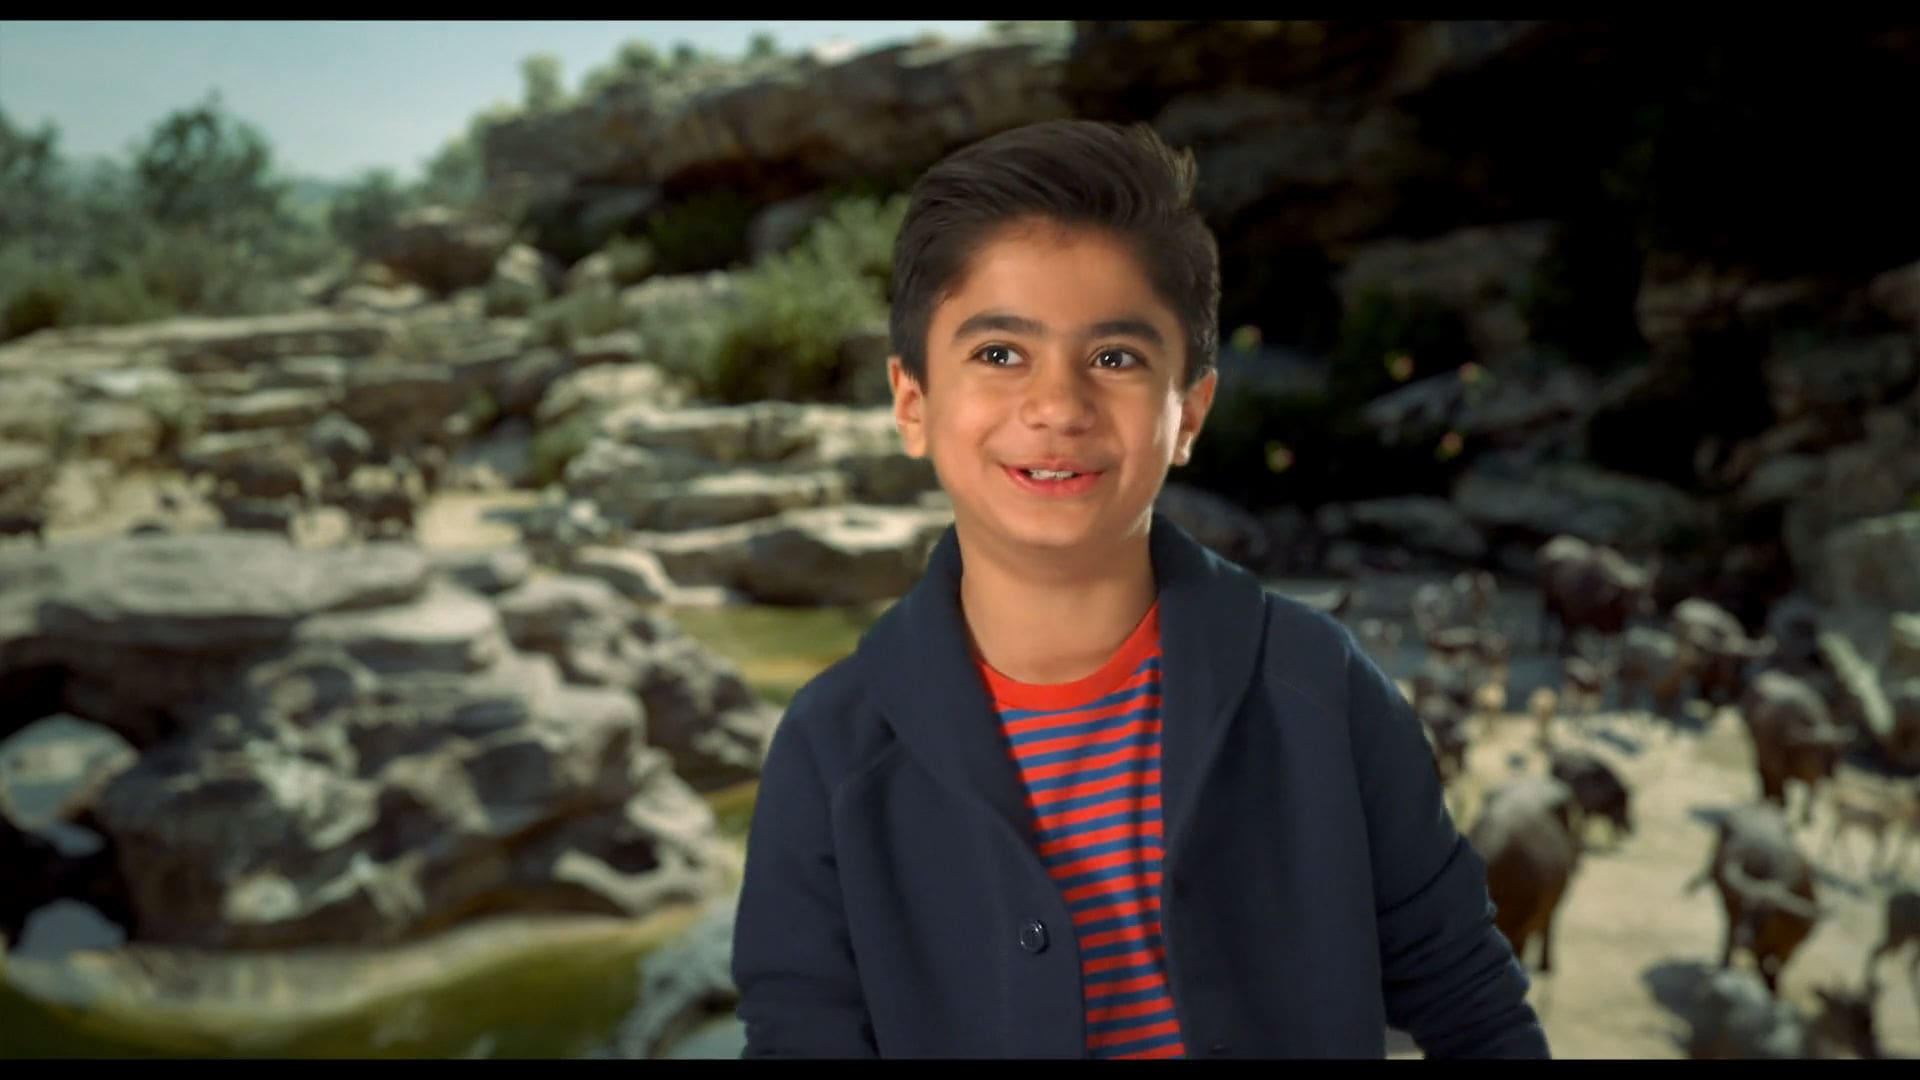 Neel Sethi's audition for The Jungle Book